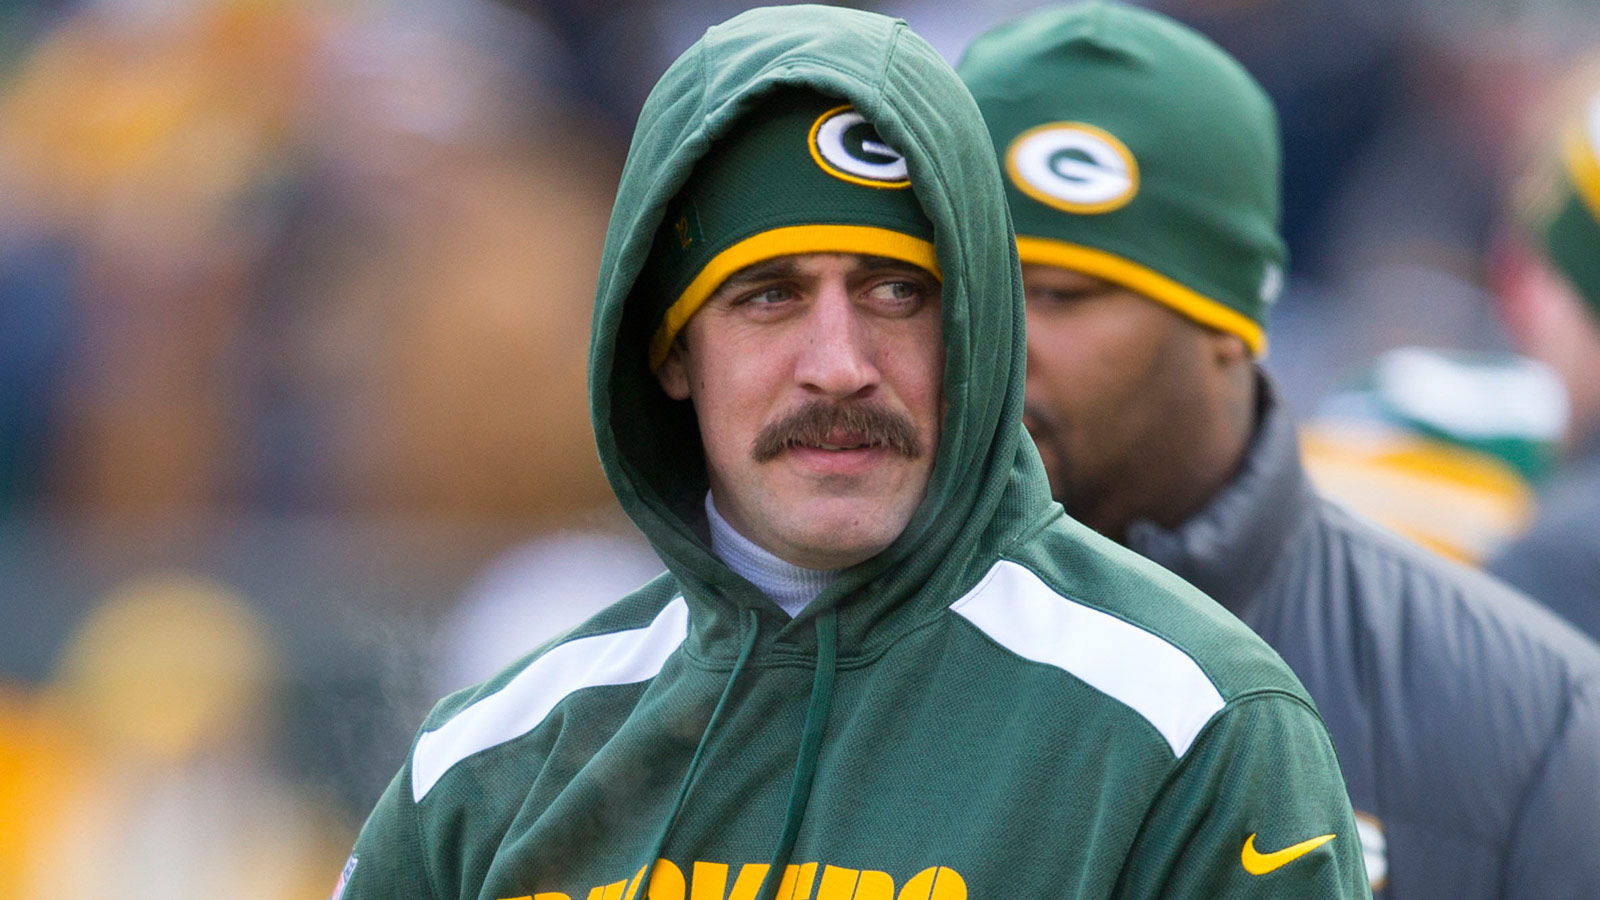 Aaron Rodgers vs. Minnesota Vikings on road: 24/34, 325 passing yards, 4 TDs: